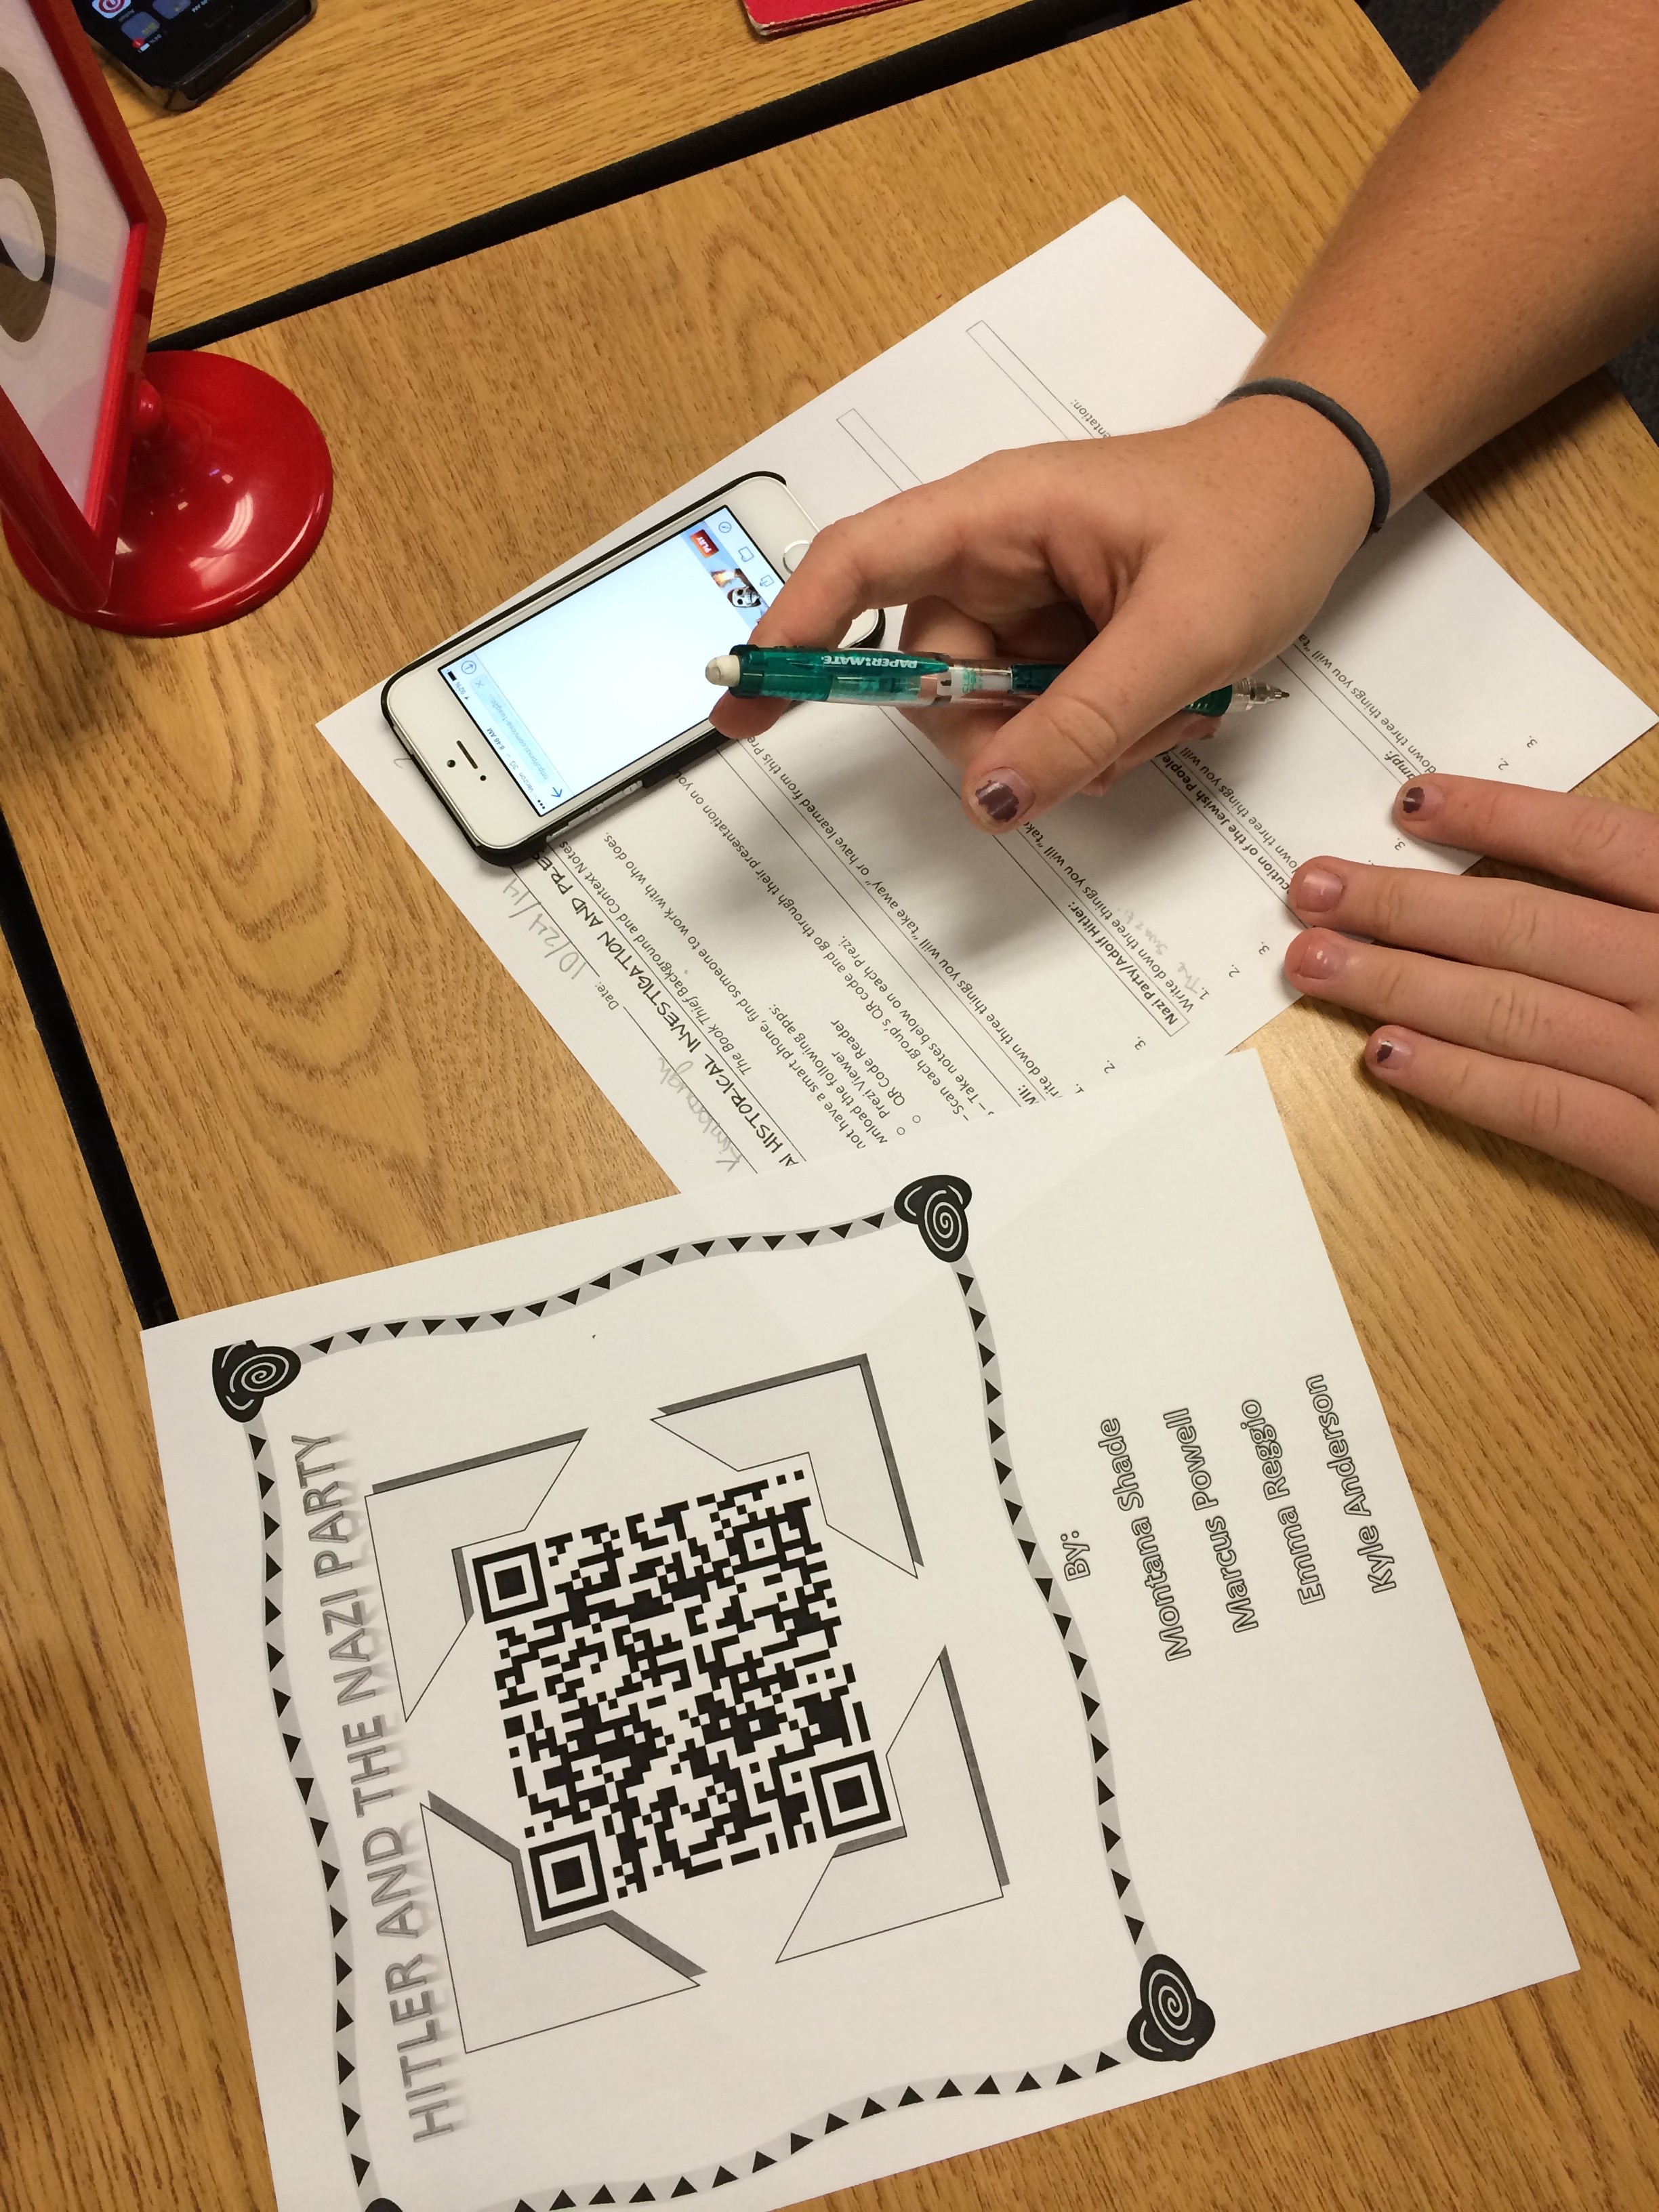 qr code research paper